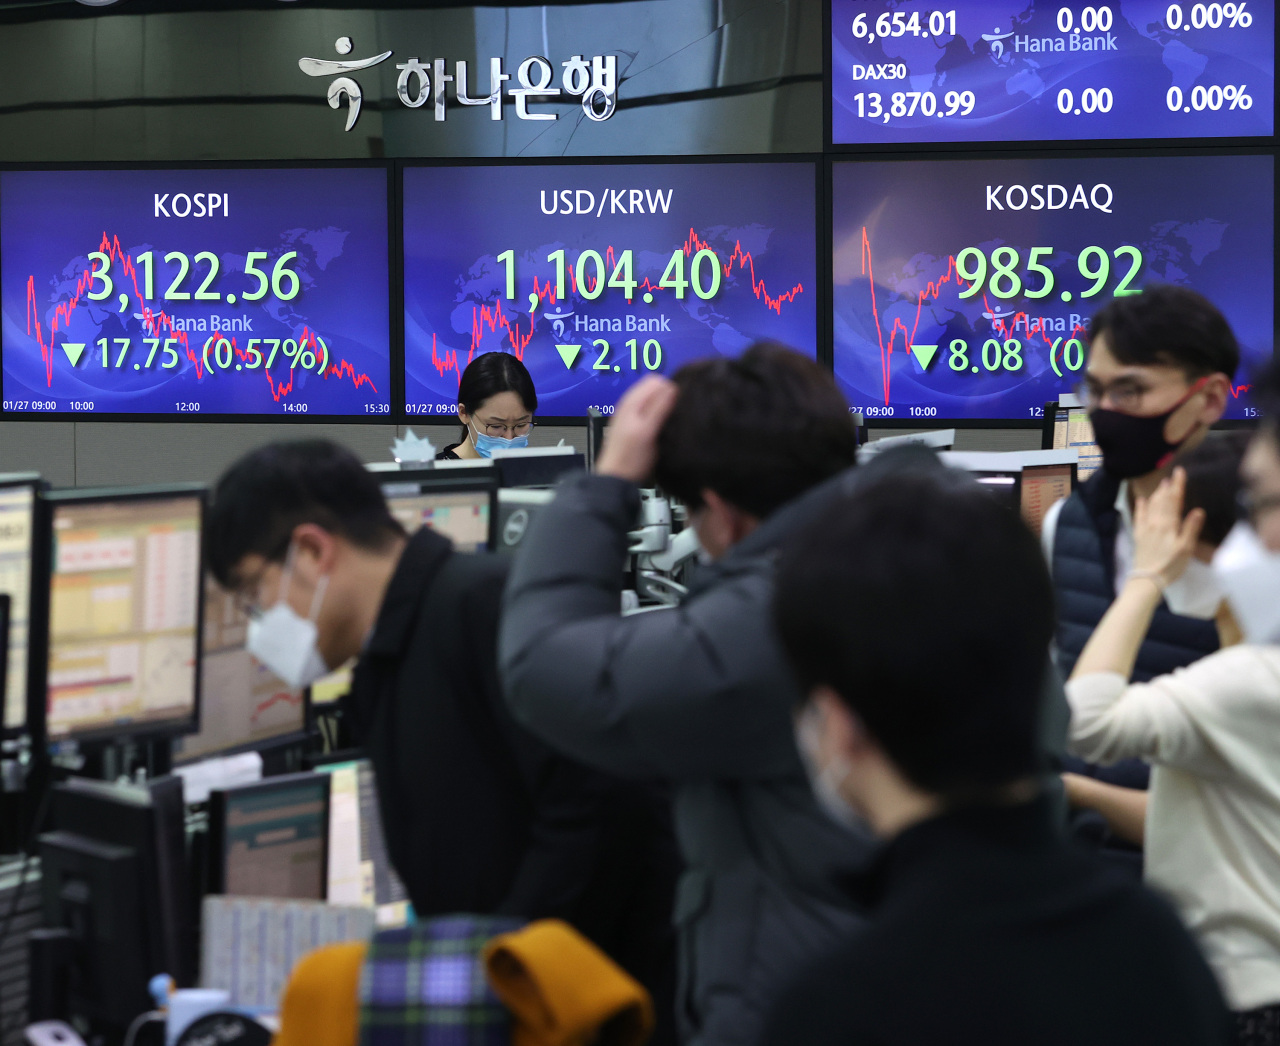 Electronic signboards at the trading room of Hana Bank in Seoul show the benchmark Kospi closed at 3,122.56 on Wednesday, 17.75 points or 0.57 percent from the previous session's close. (Yonhap)